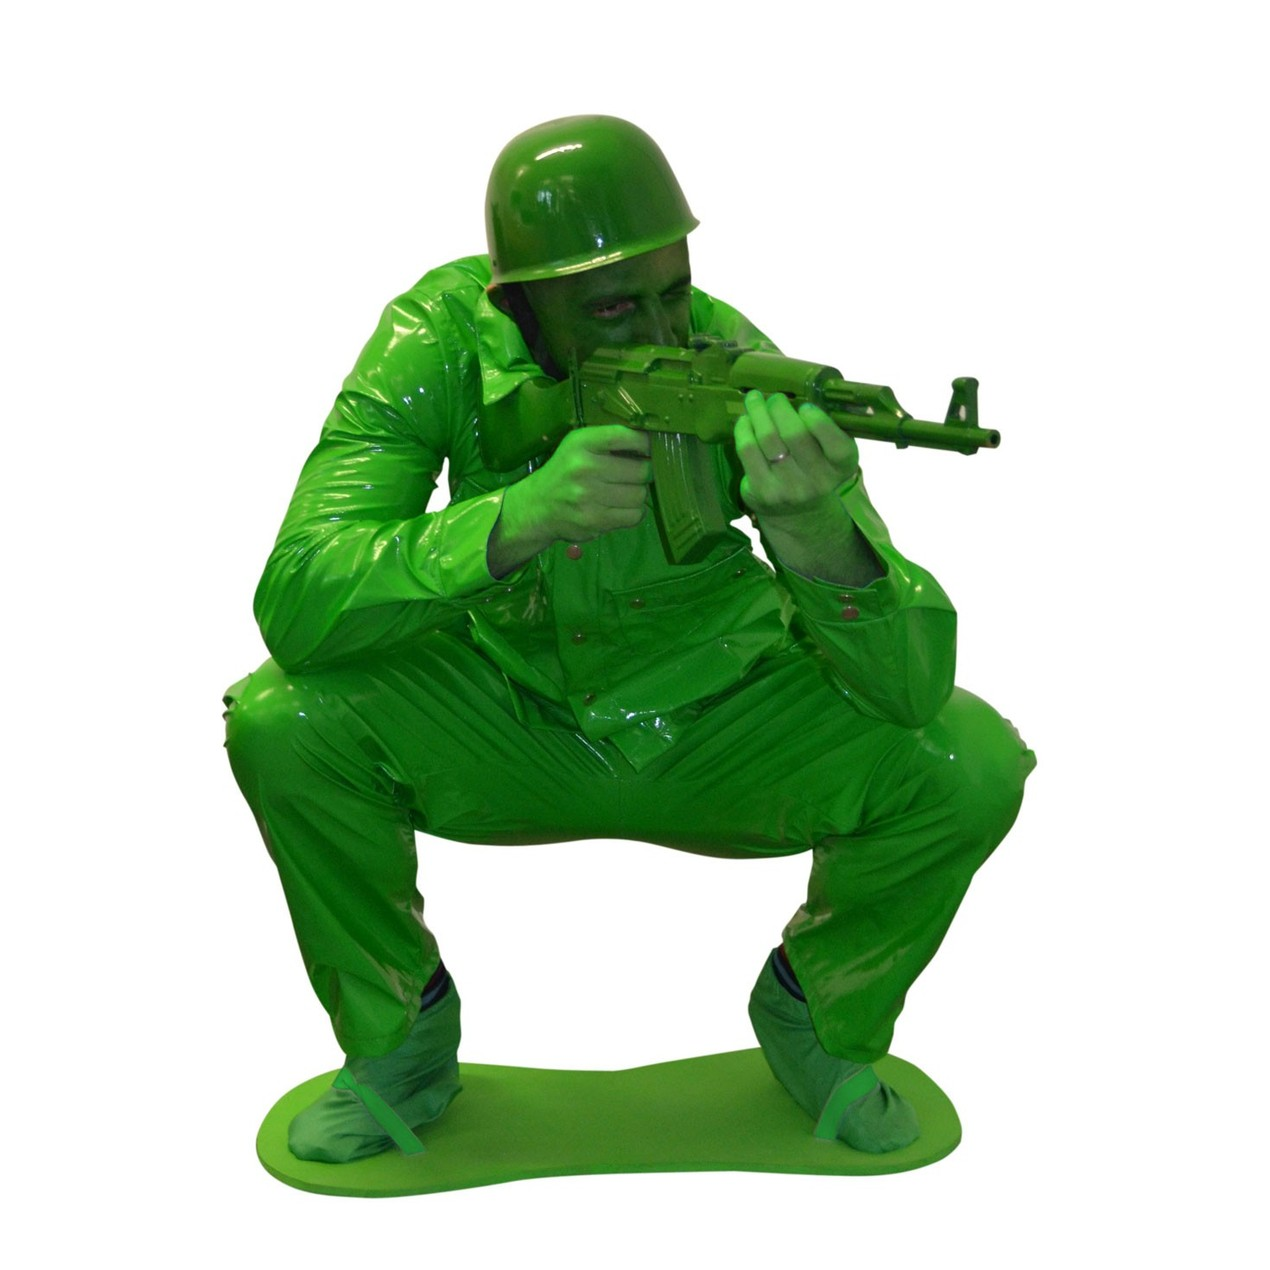 8a6195fa64e Toy Soldier Adult Costume Army Man Men Green Toy Story 2 3 Military ...